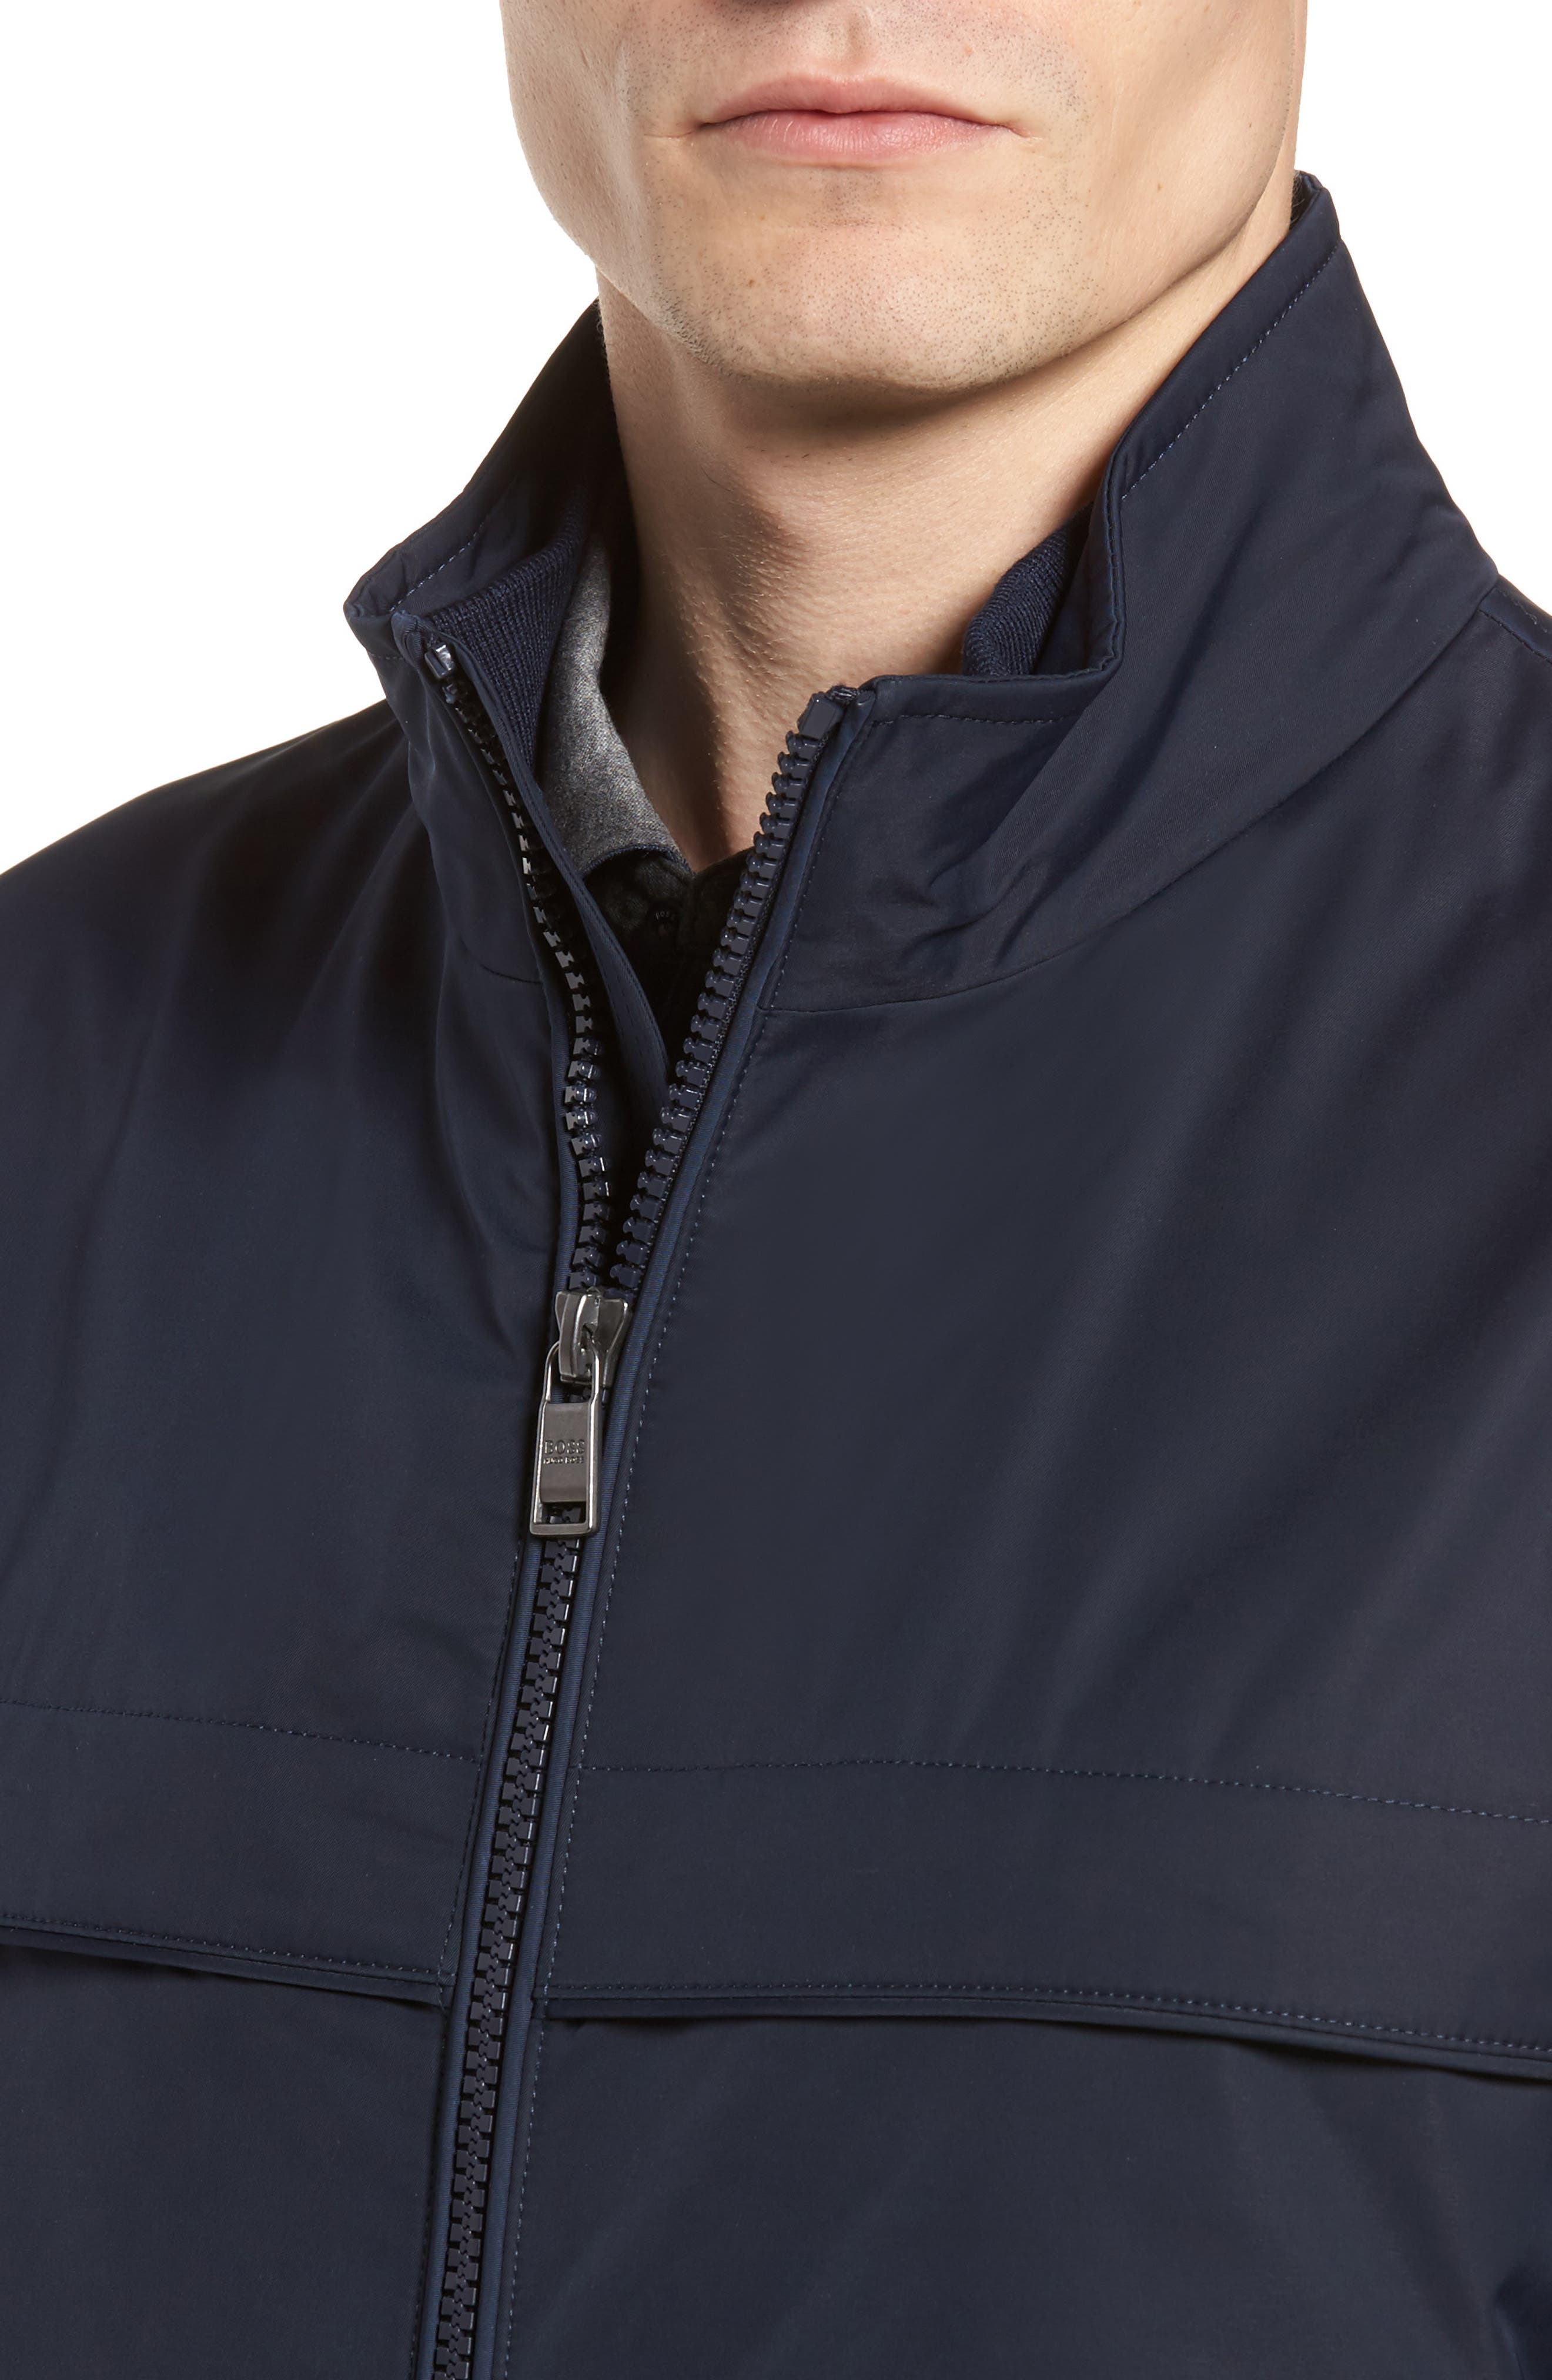 Cossito Regular Fit Bomber Jacket,                             Alternate thumbnail 4, color,                             410